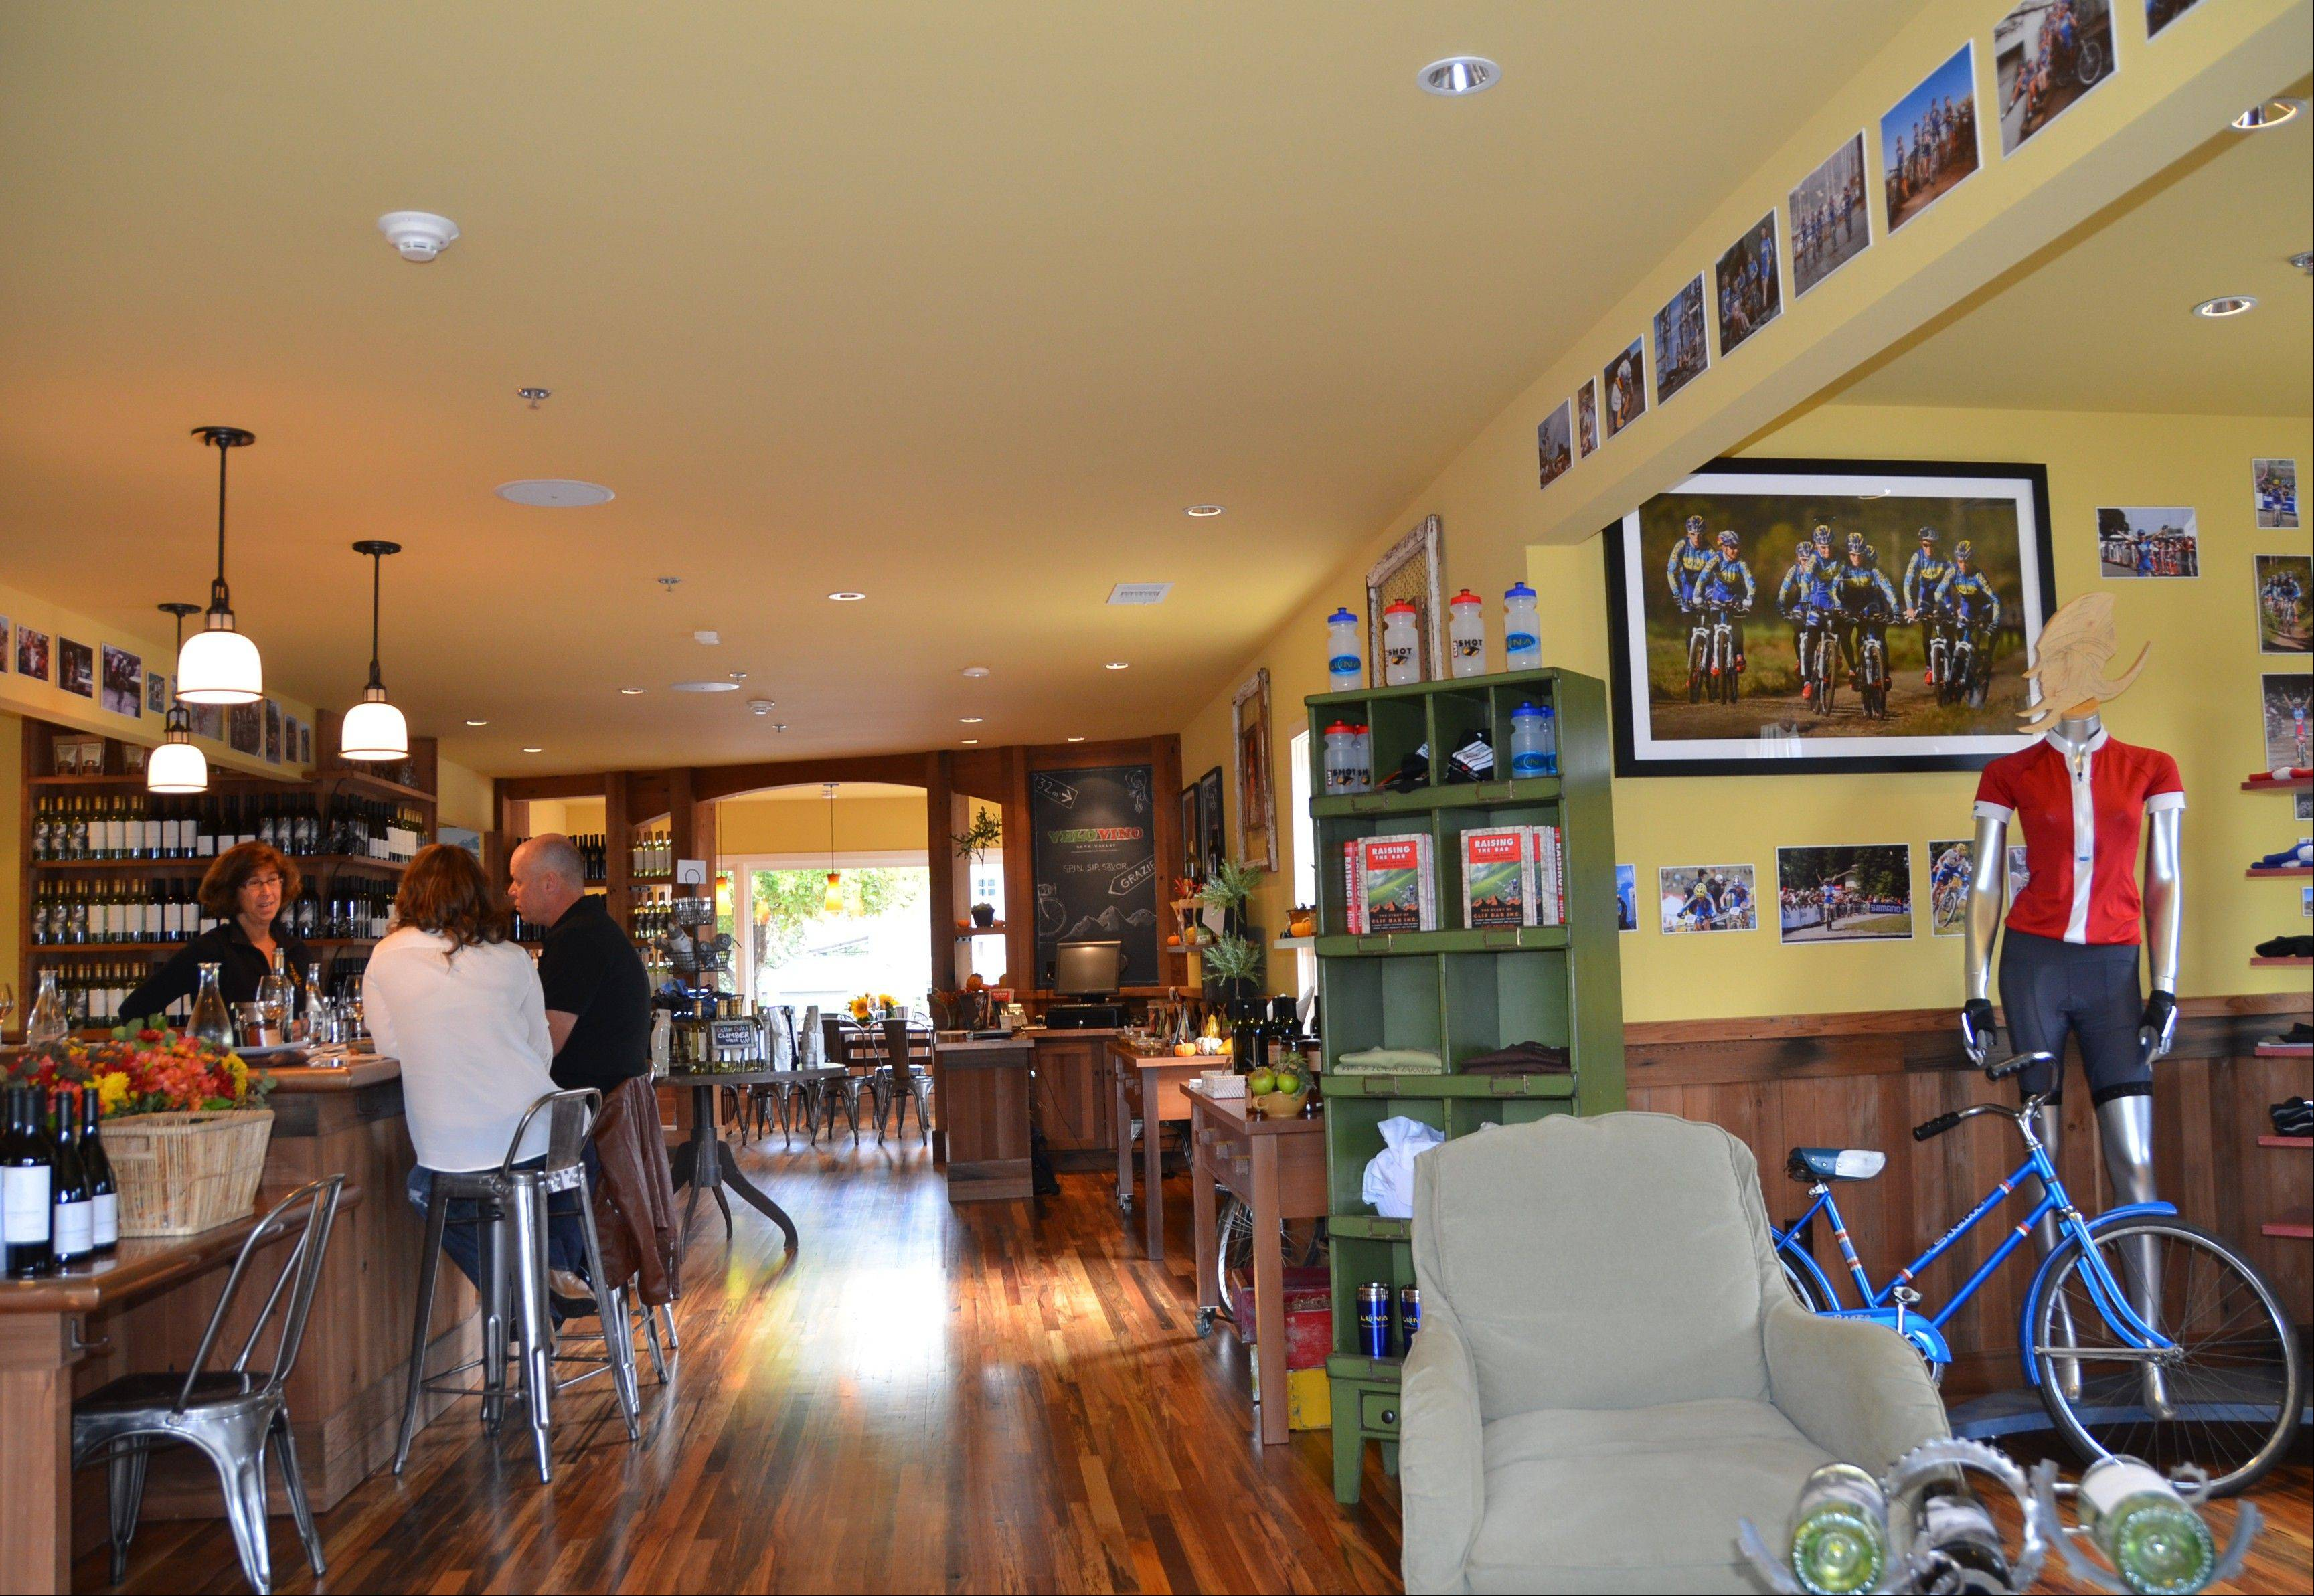 Visitors sample both wine and cycling memorabilia during a stop at Velo Vino Napa Valley in St. Helena, Calif., founded by the family that makes Clif Bars and Clif Family wines.